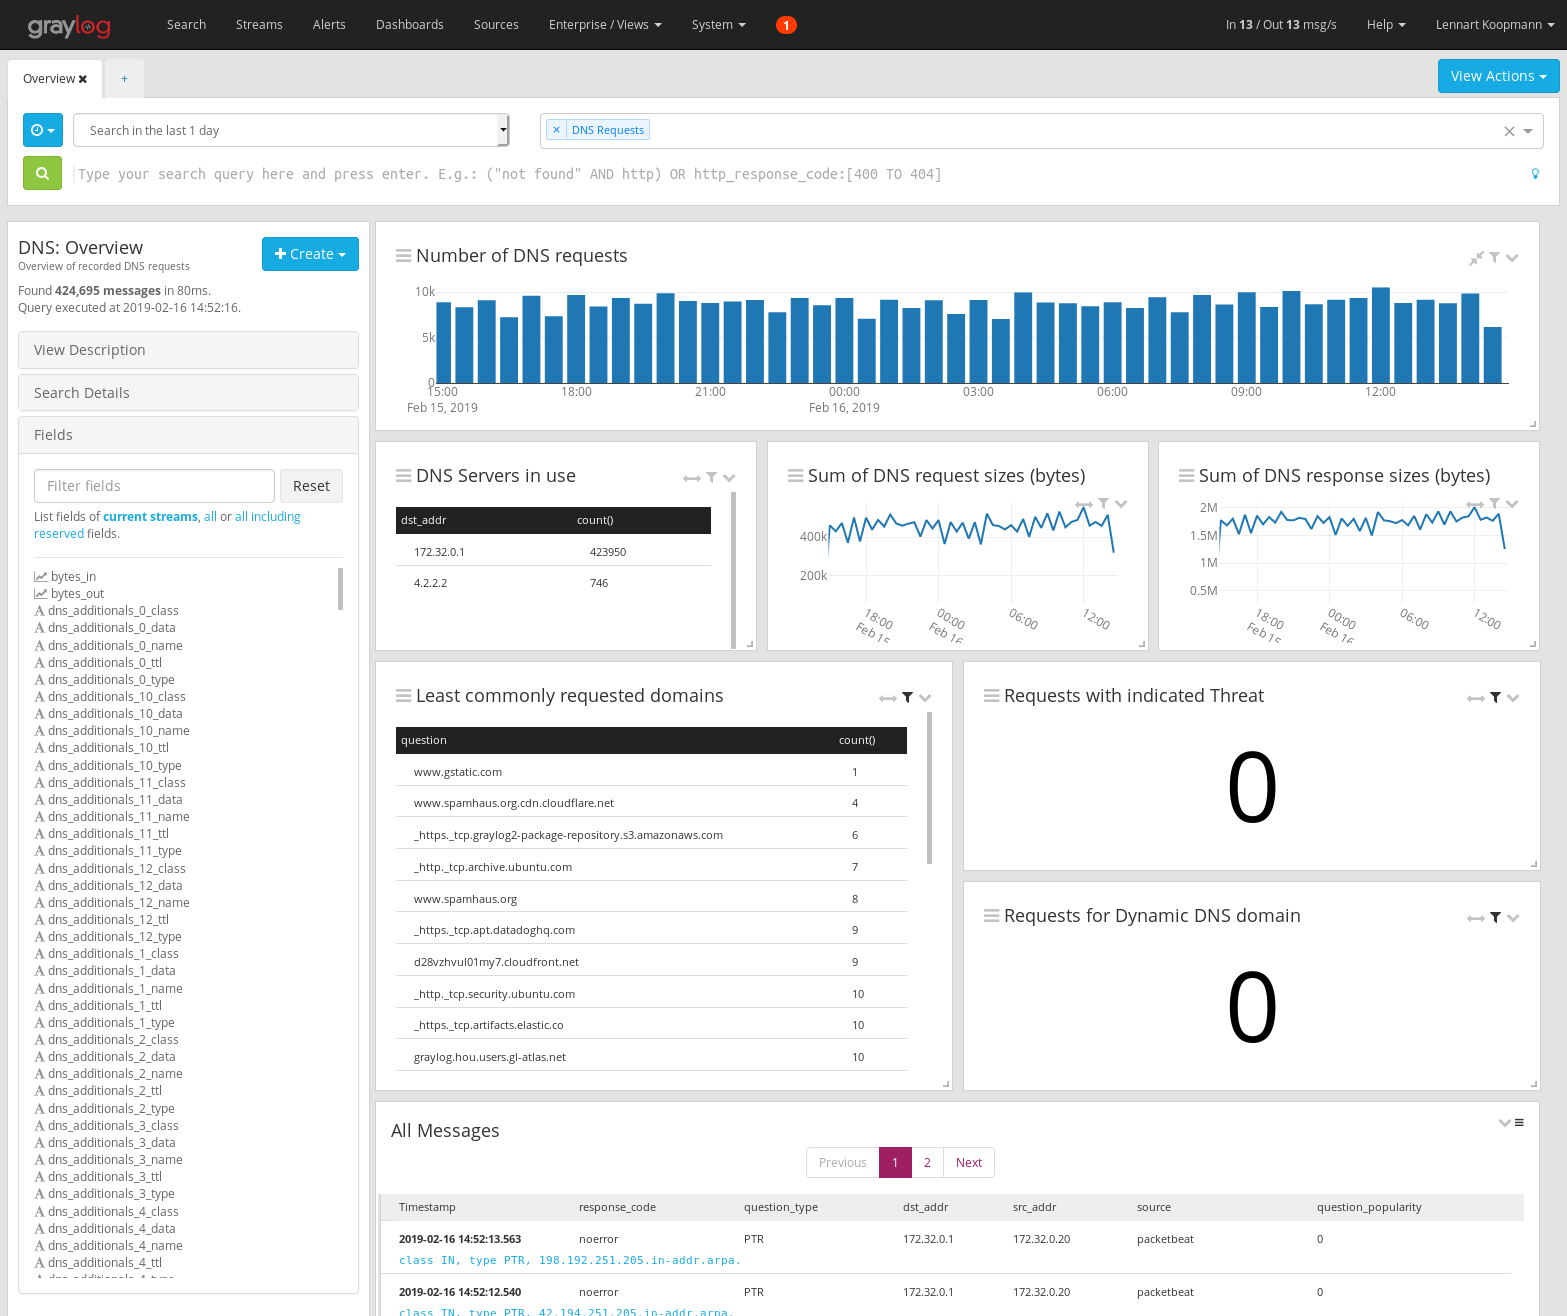 Graylog Dashboard